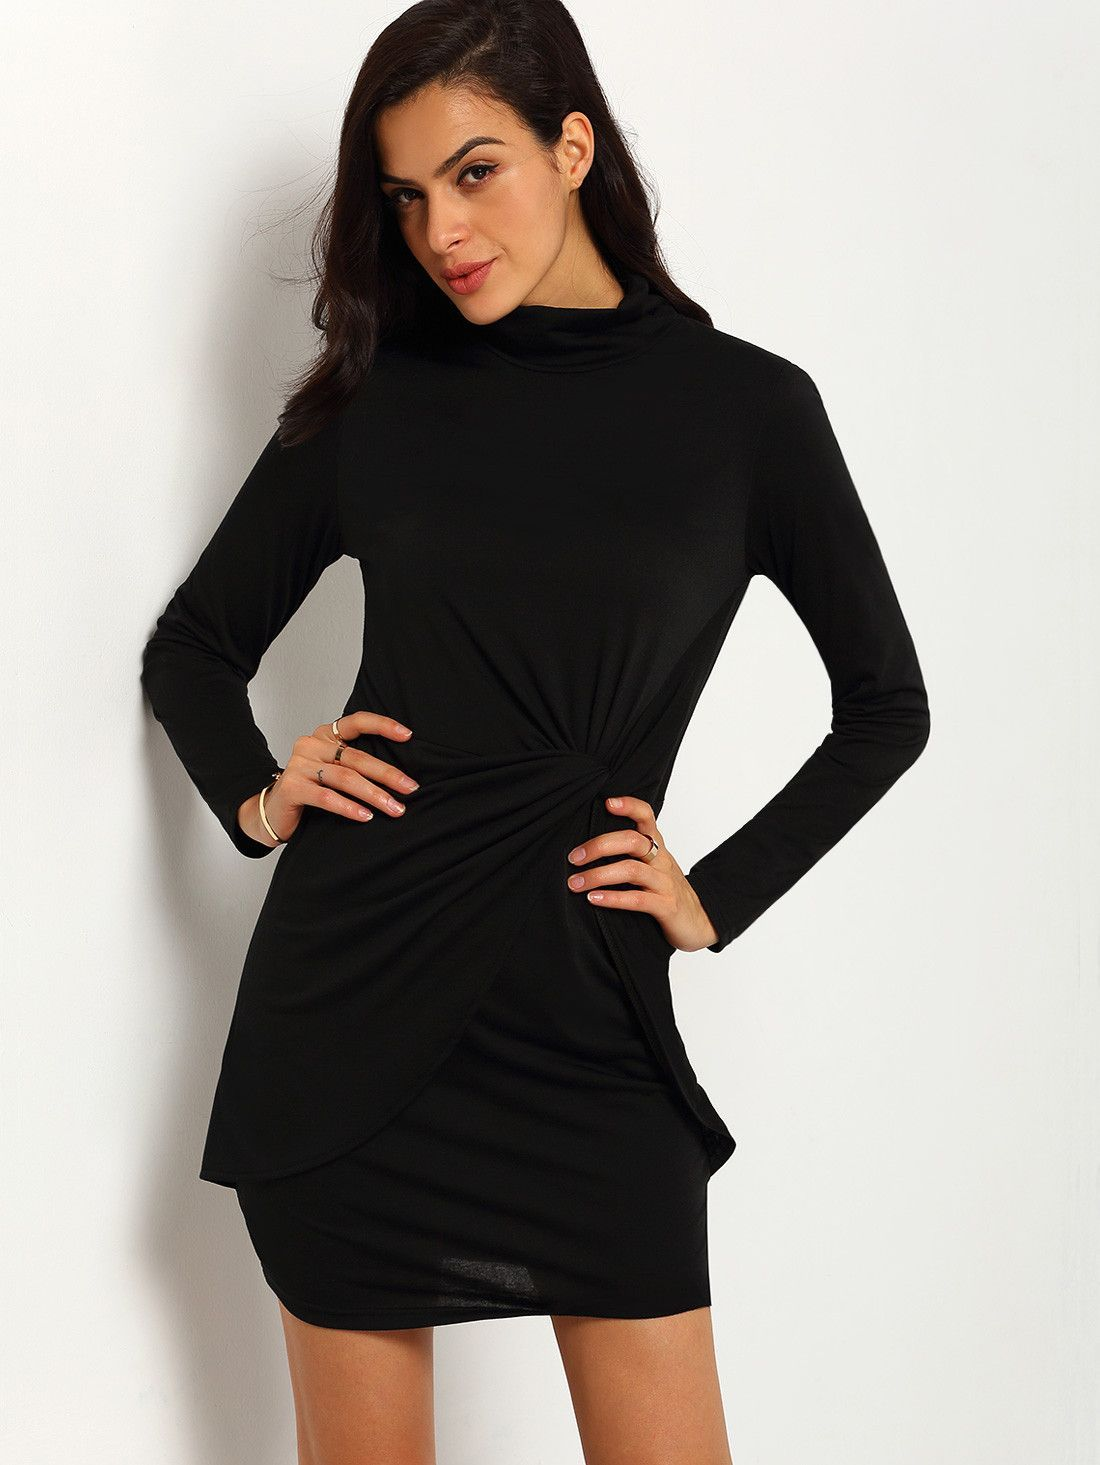 Black turtleneck long sleeve knotted sheath dress get in my closet